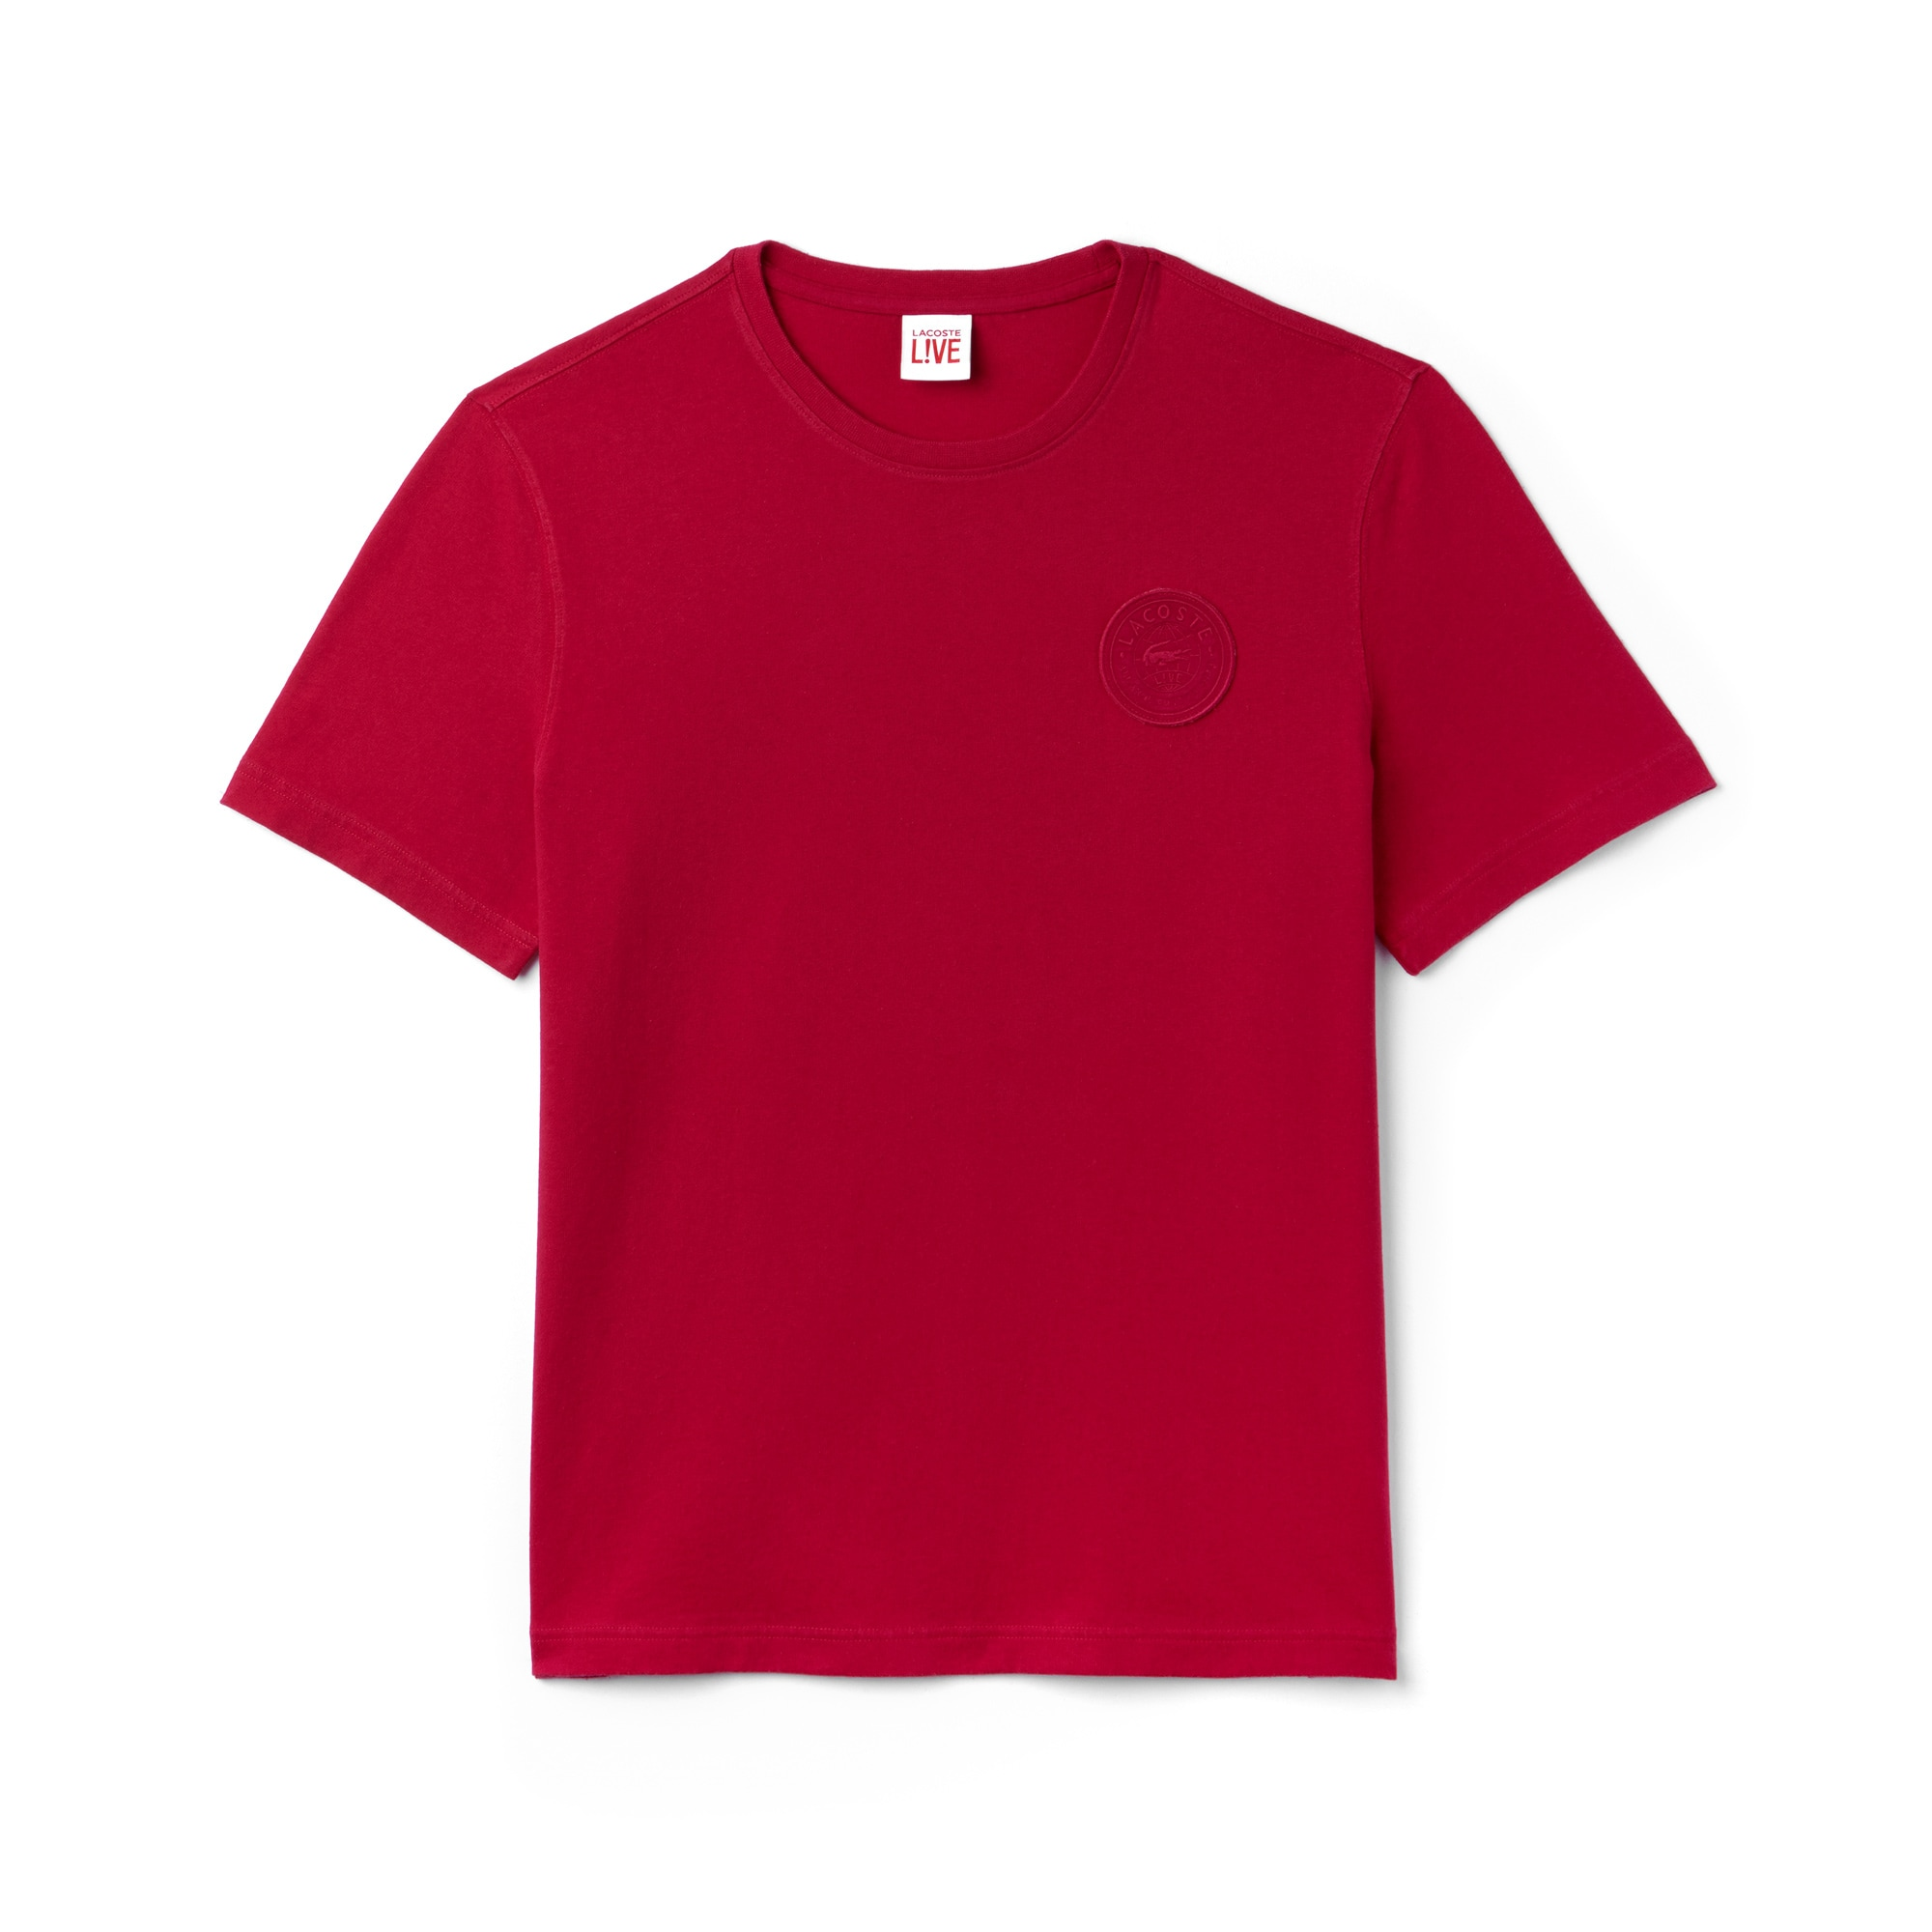 라코스테 Lacoste Mens LIVE Crew Neck And Badge Cotton Jersey T-shirt,pink